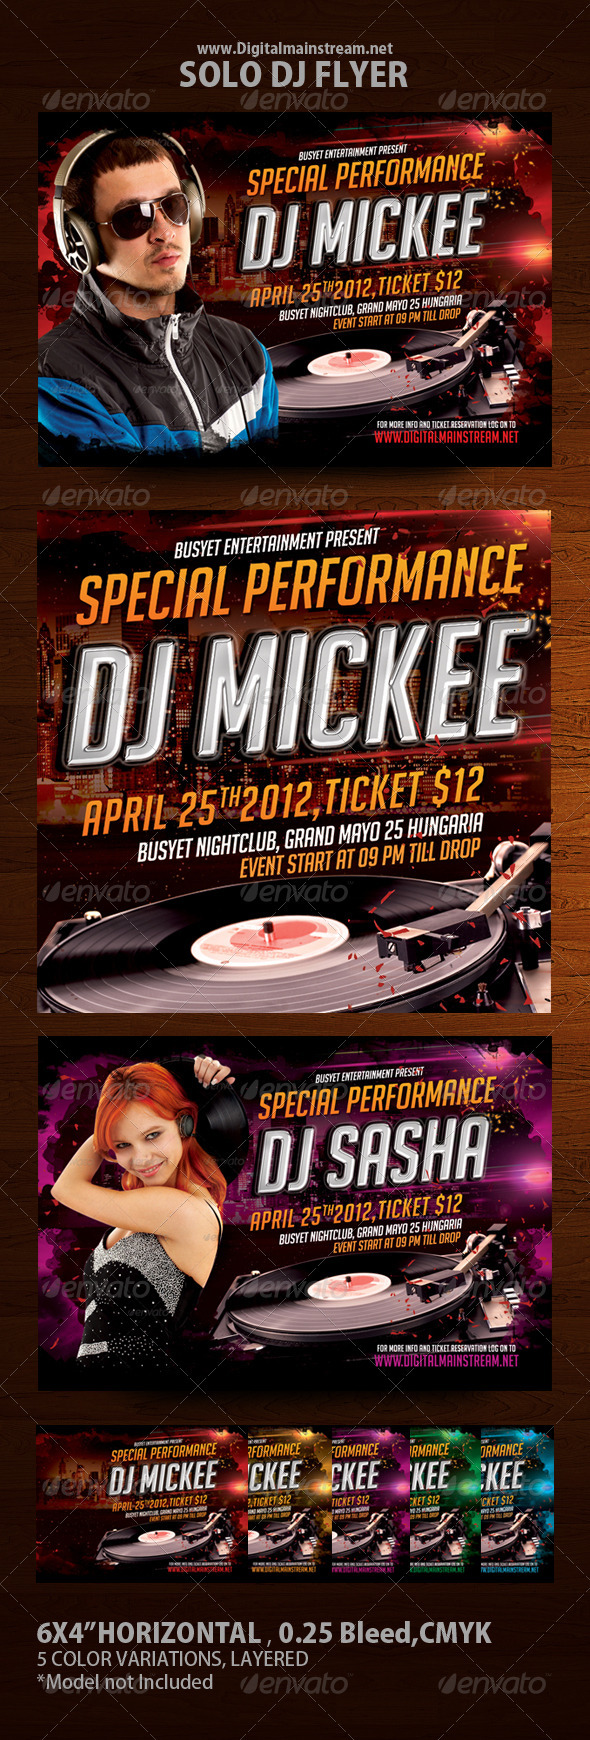 Solo Dj Flyer Template - Clubs & Parties Events